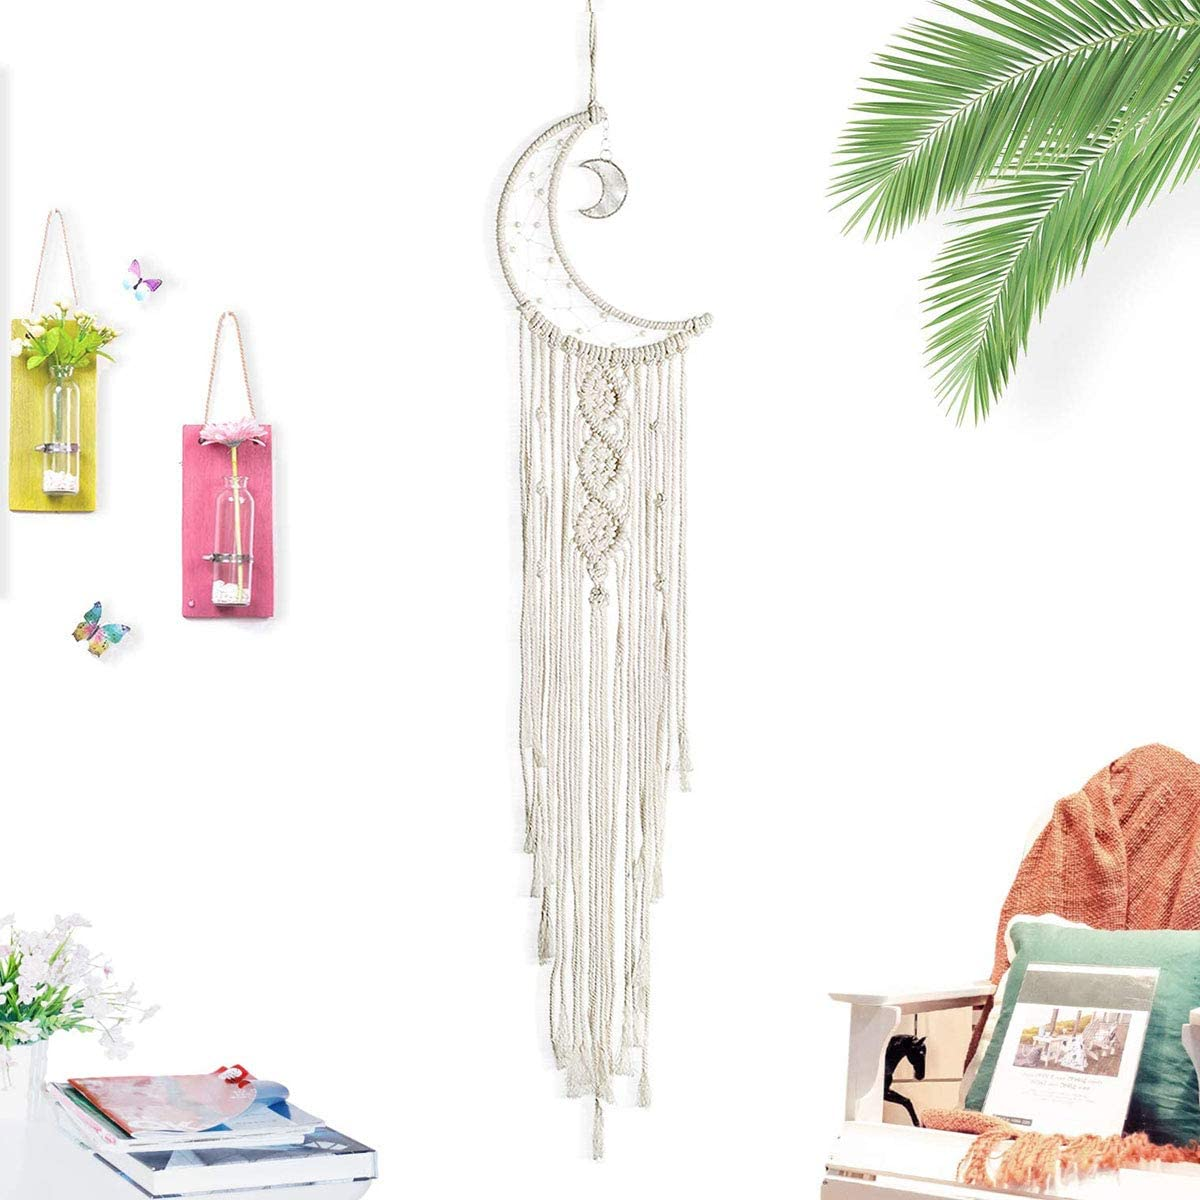 Hwceo Moon Dream Catcher for Teen Little Girls Room,Decoration Bedroom,Dorm Room Bedding,Beach Room, Wall Decor Hanging Boho Fabric Long Tapestry Dreamcatcher for Baby Shower,Birthday Decorate Beige